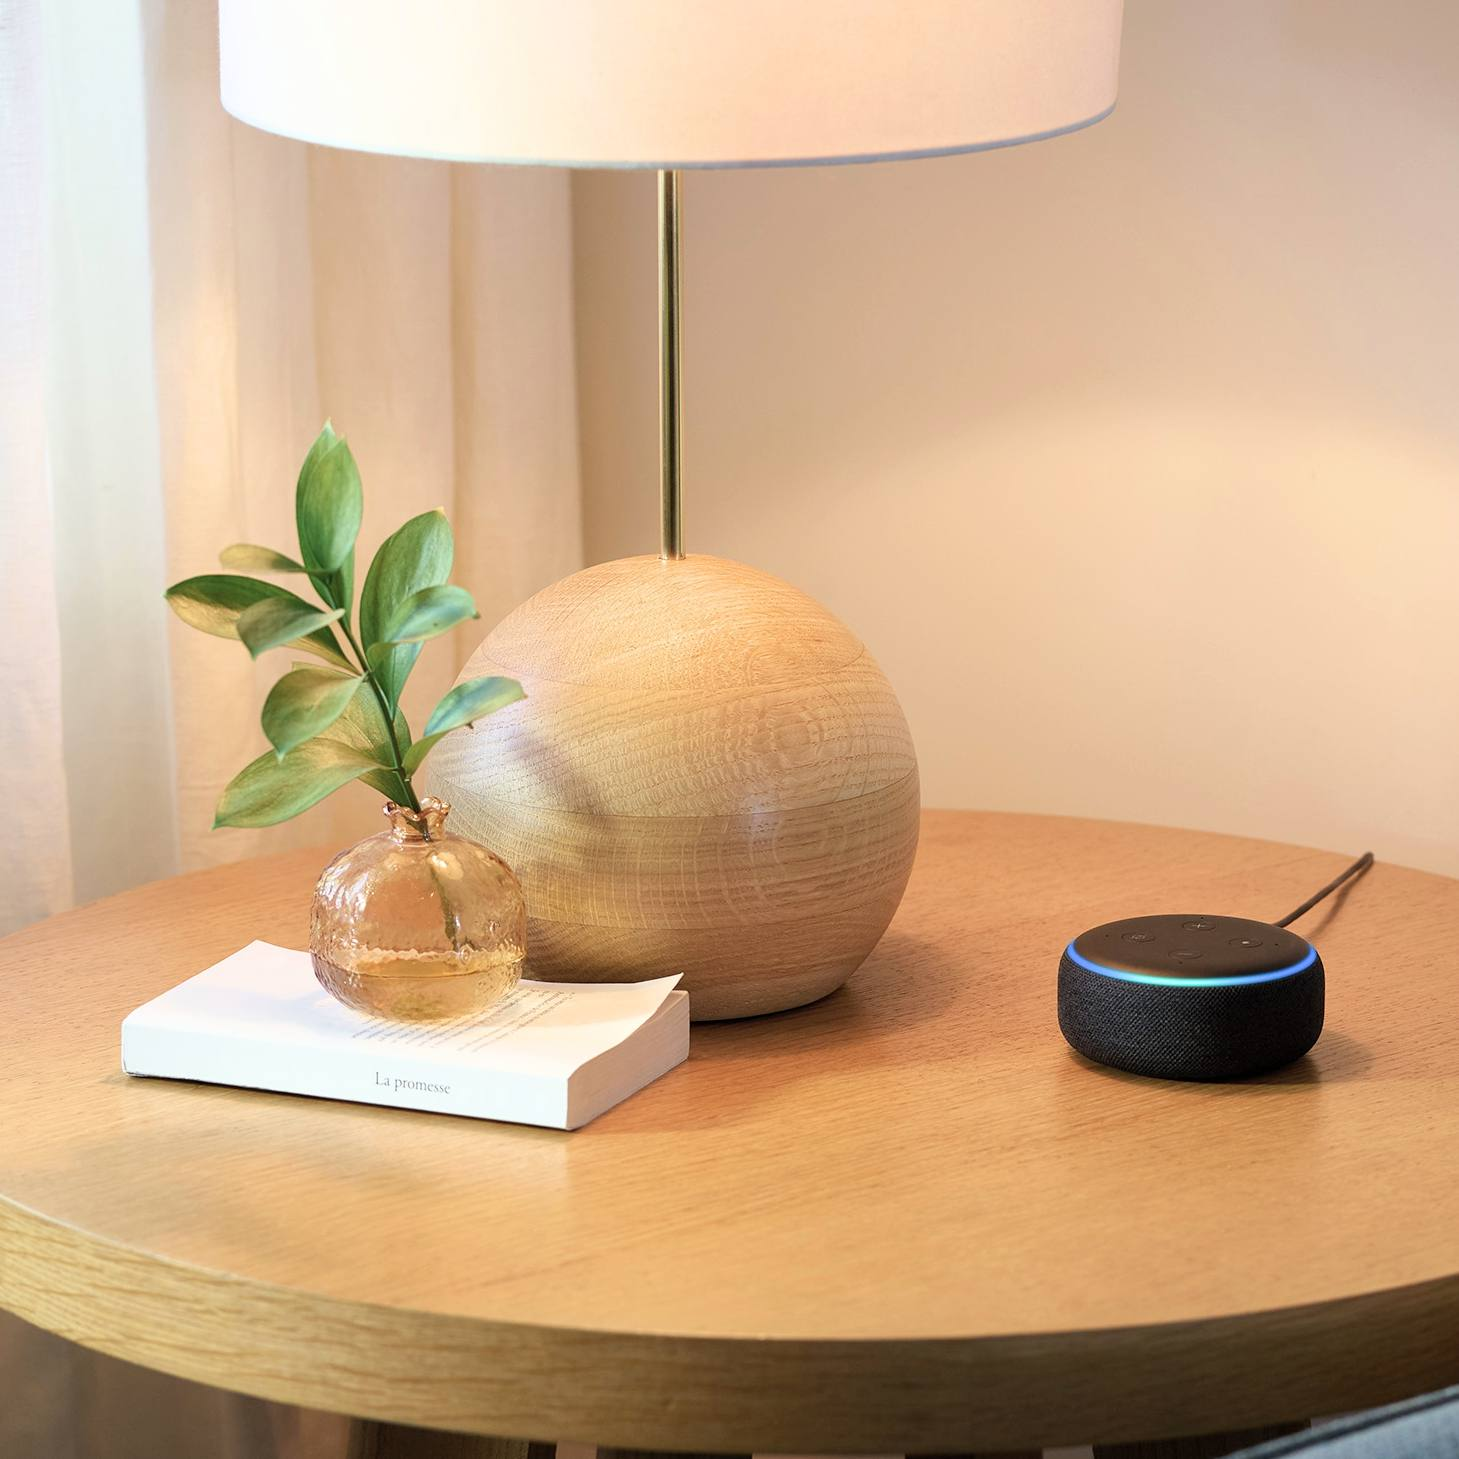 an Amazon Alexa Echo Dot placed on a side table with a lamp, a book and a green leafed sprig in a vase